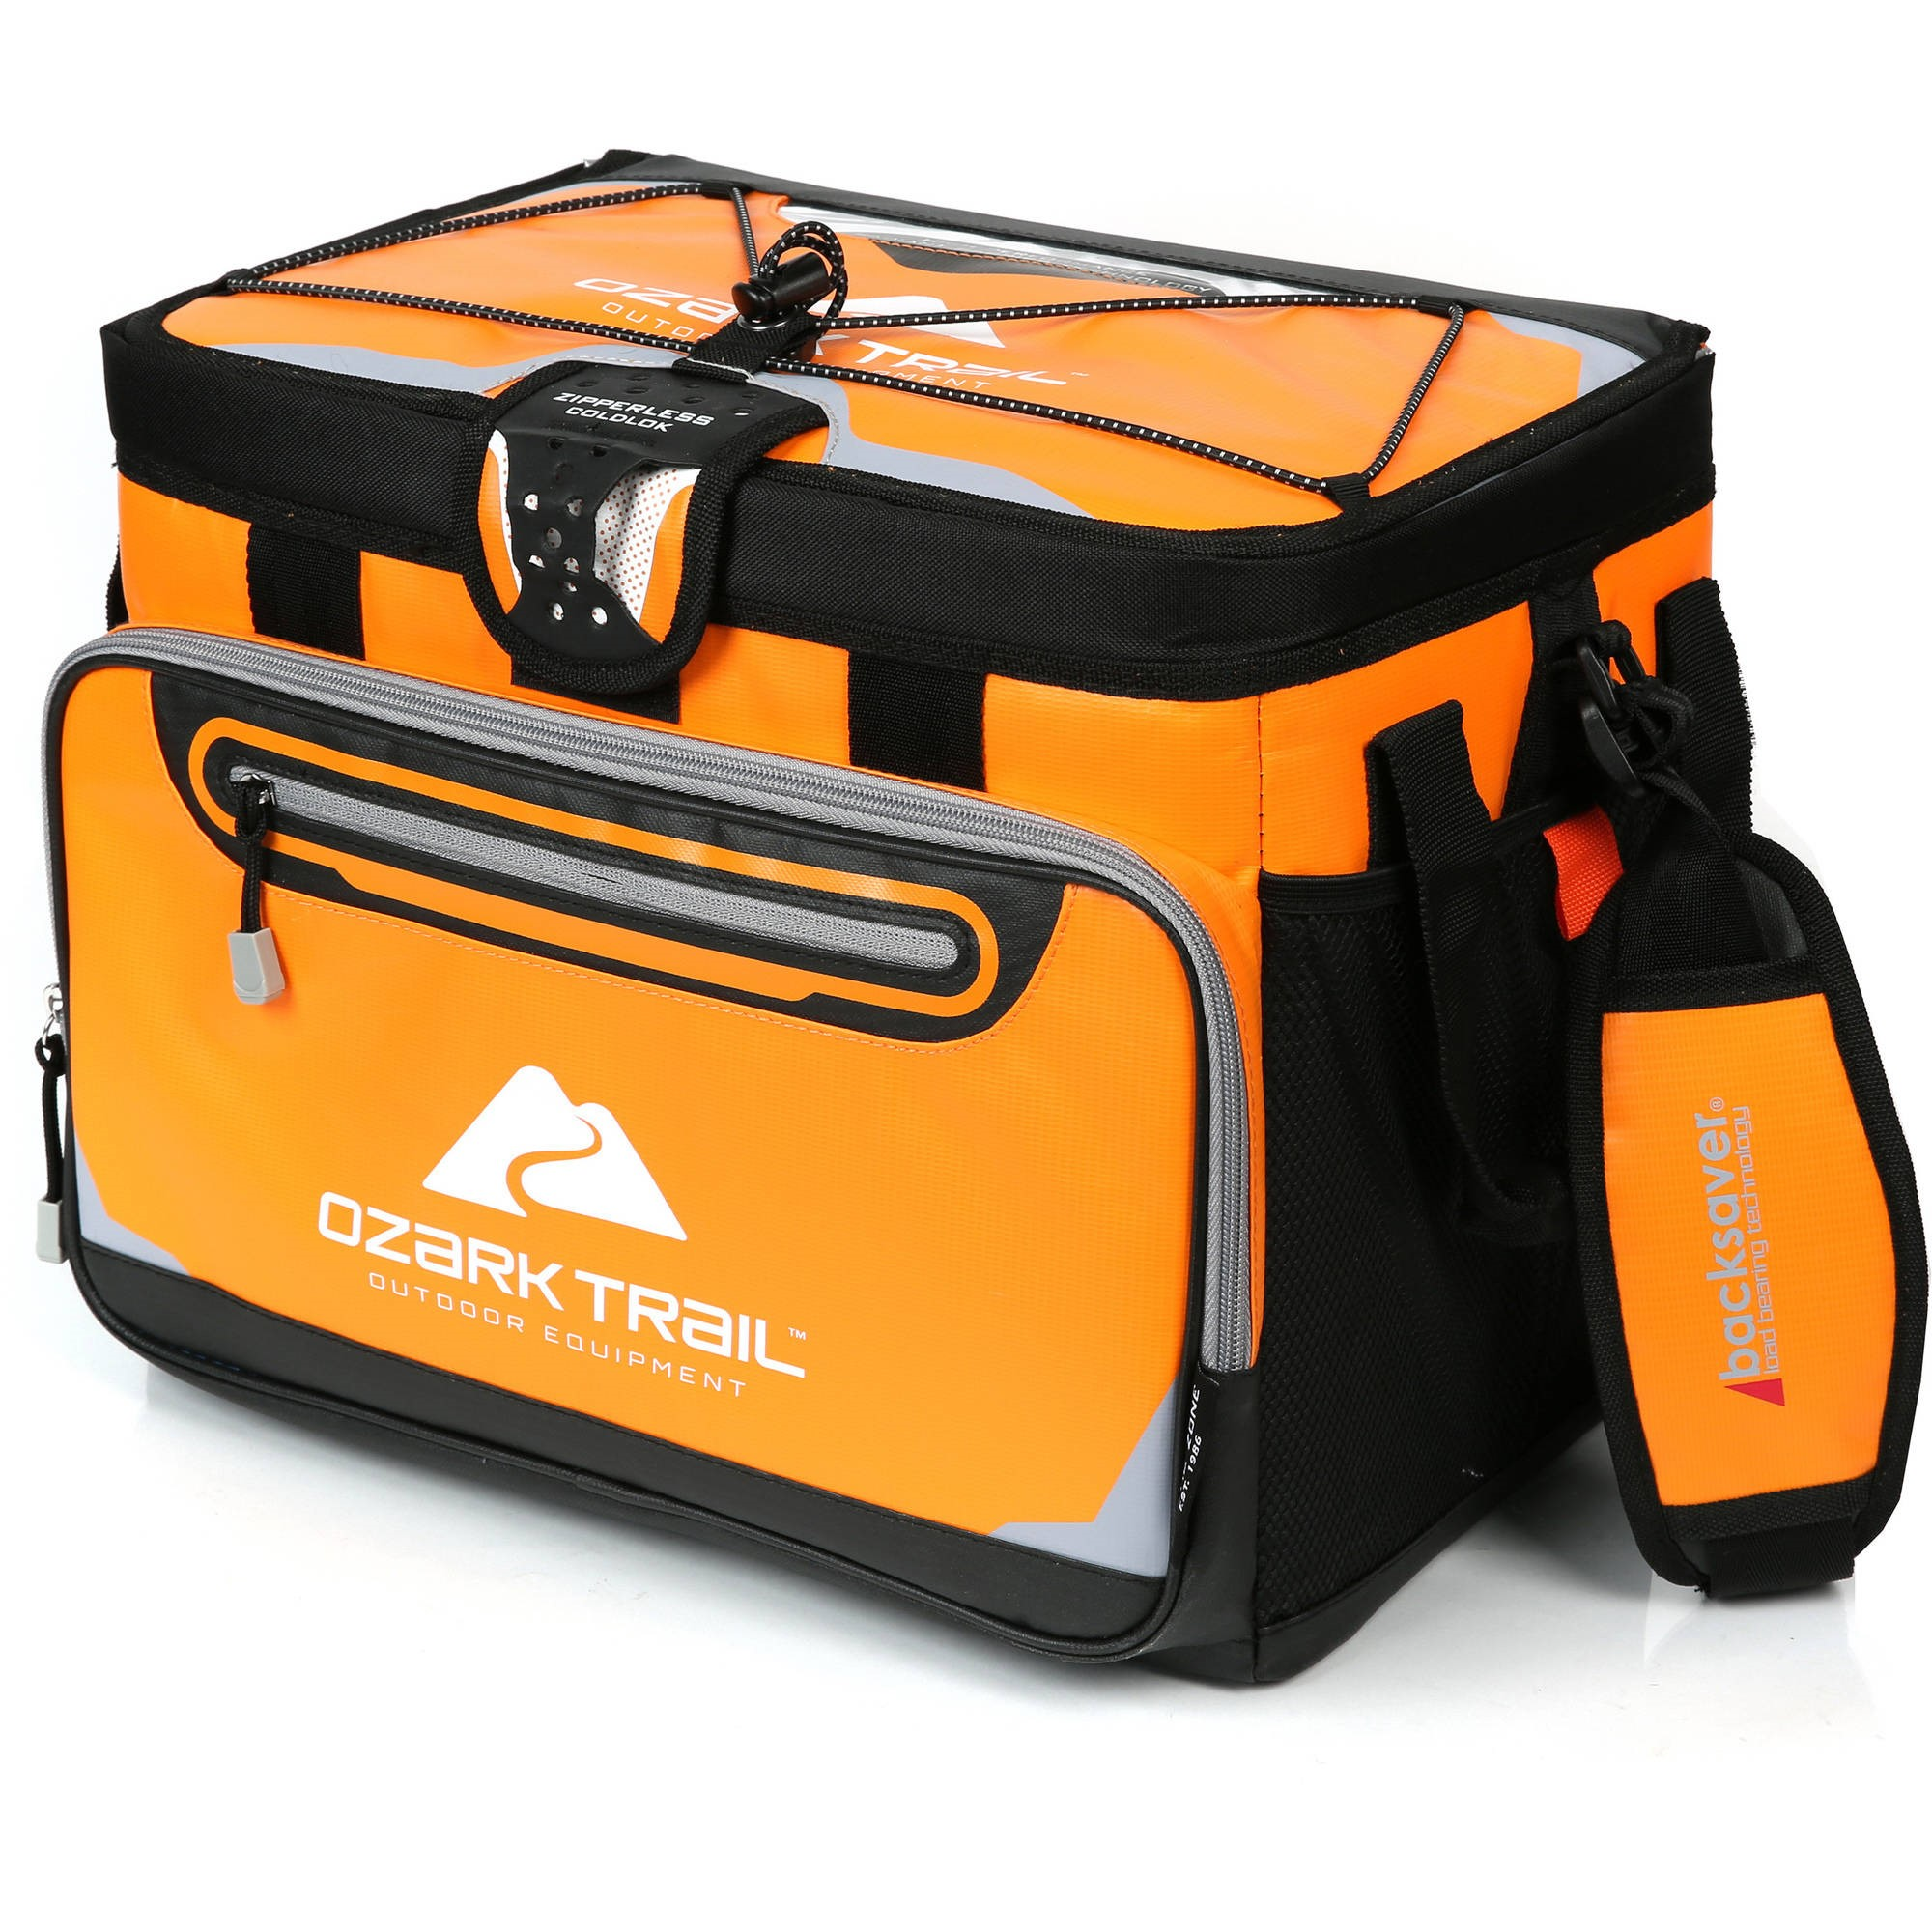 Ozark Trail 30-Can Zipperless Cooler, Orange